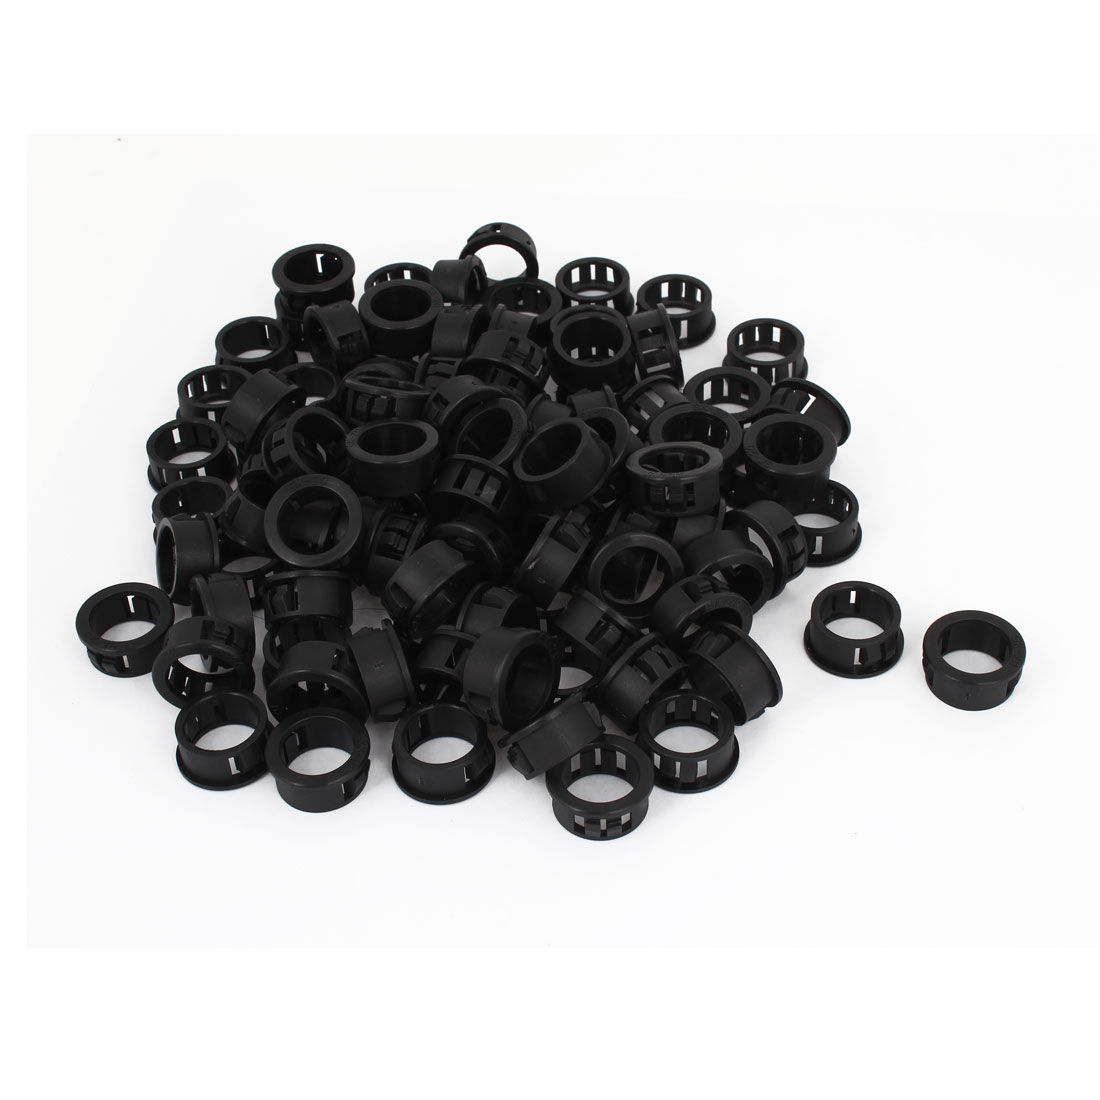 200 Pcs SKT-20 Snap in Mounting Locking Hole Plug Button Cover 20mm x 22mm x 10mm